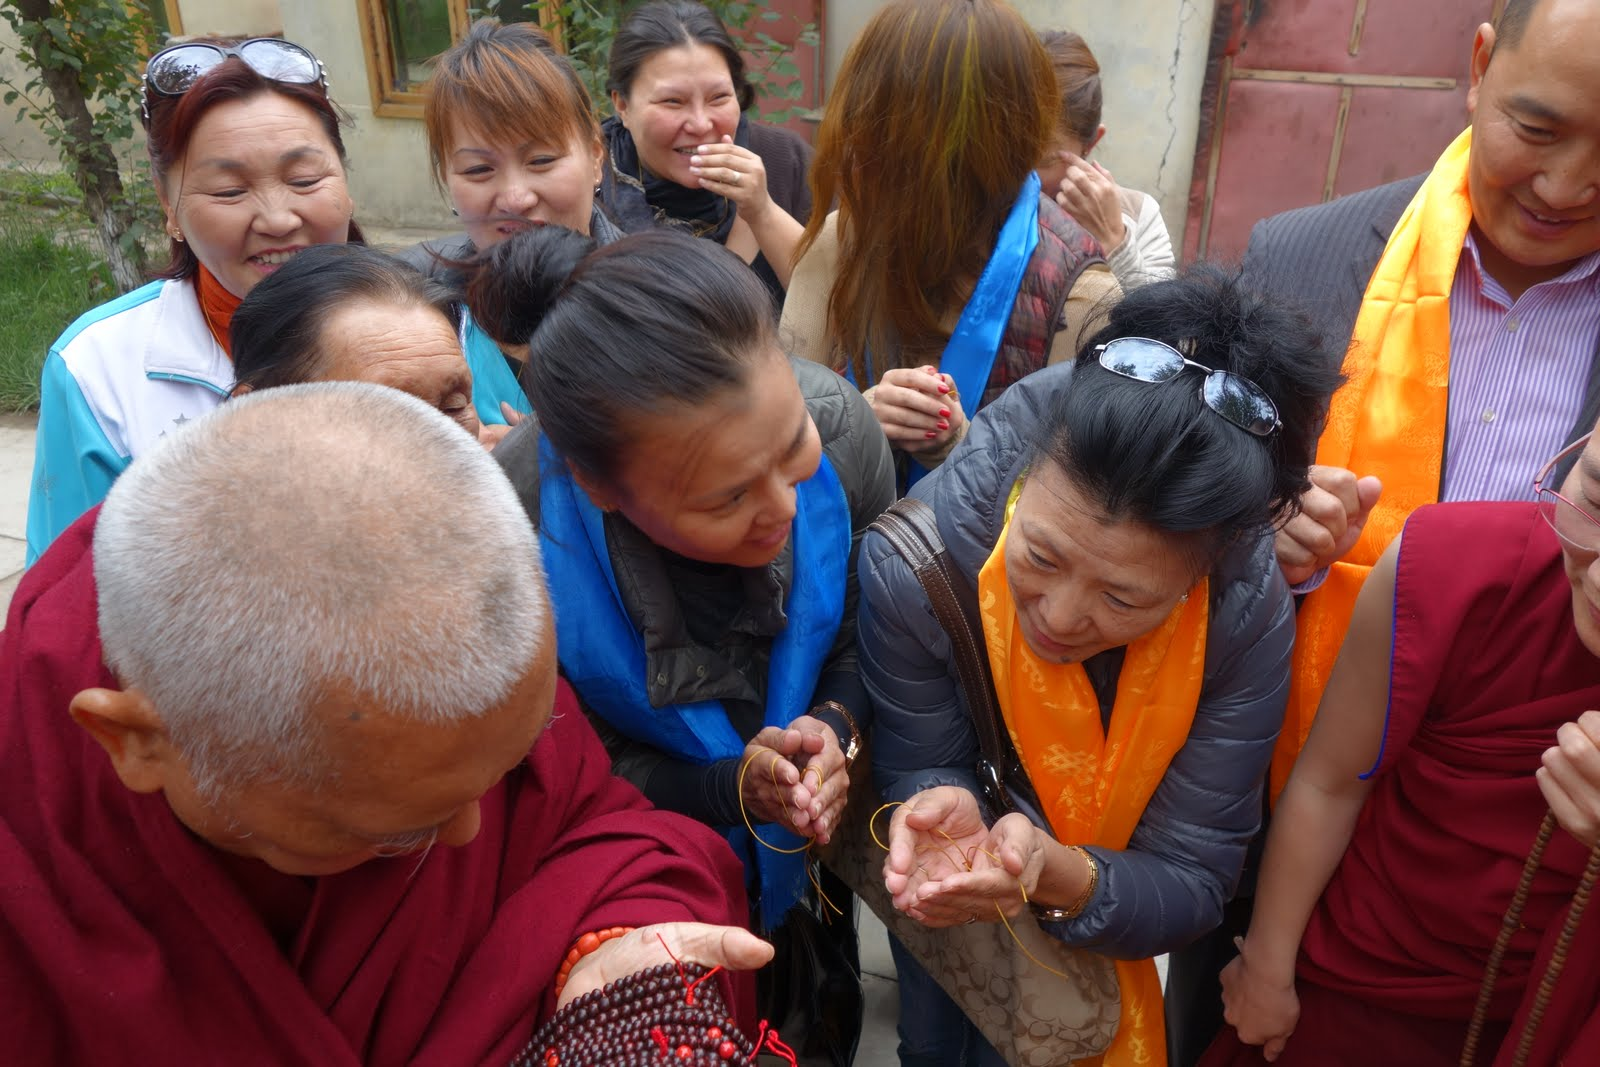 Rinpoche giving out malas and blessing cordss to local people near the Drolma Community Center, Mongolia. September 2013. Photo by Ven. Roger Kunsang